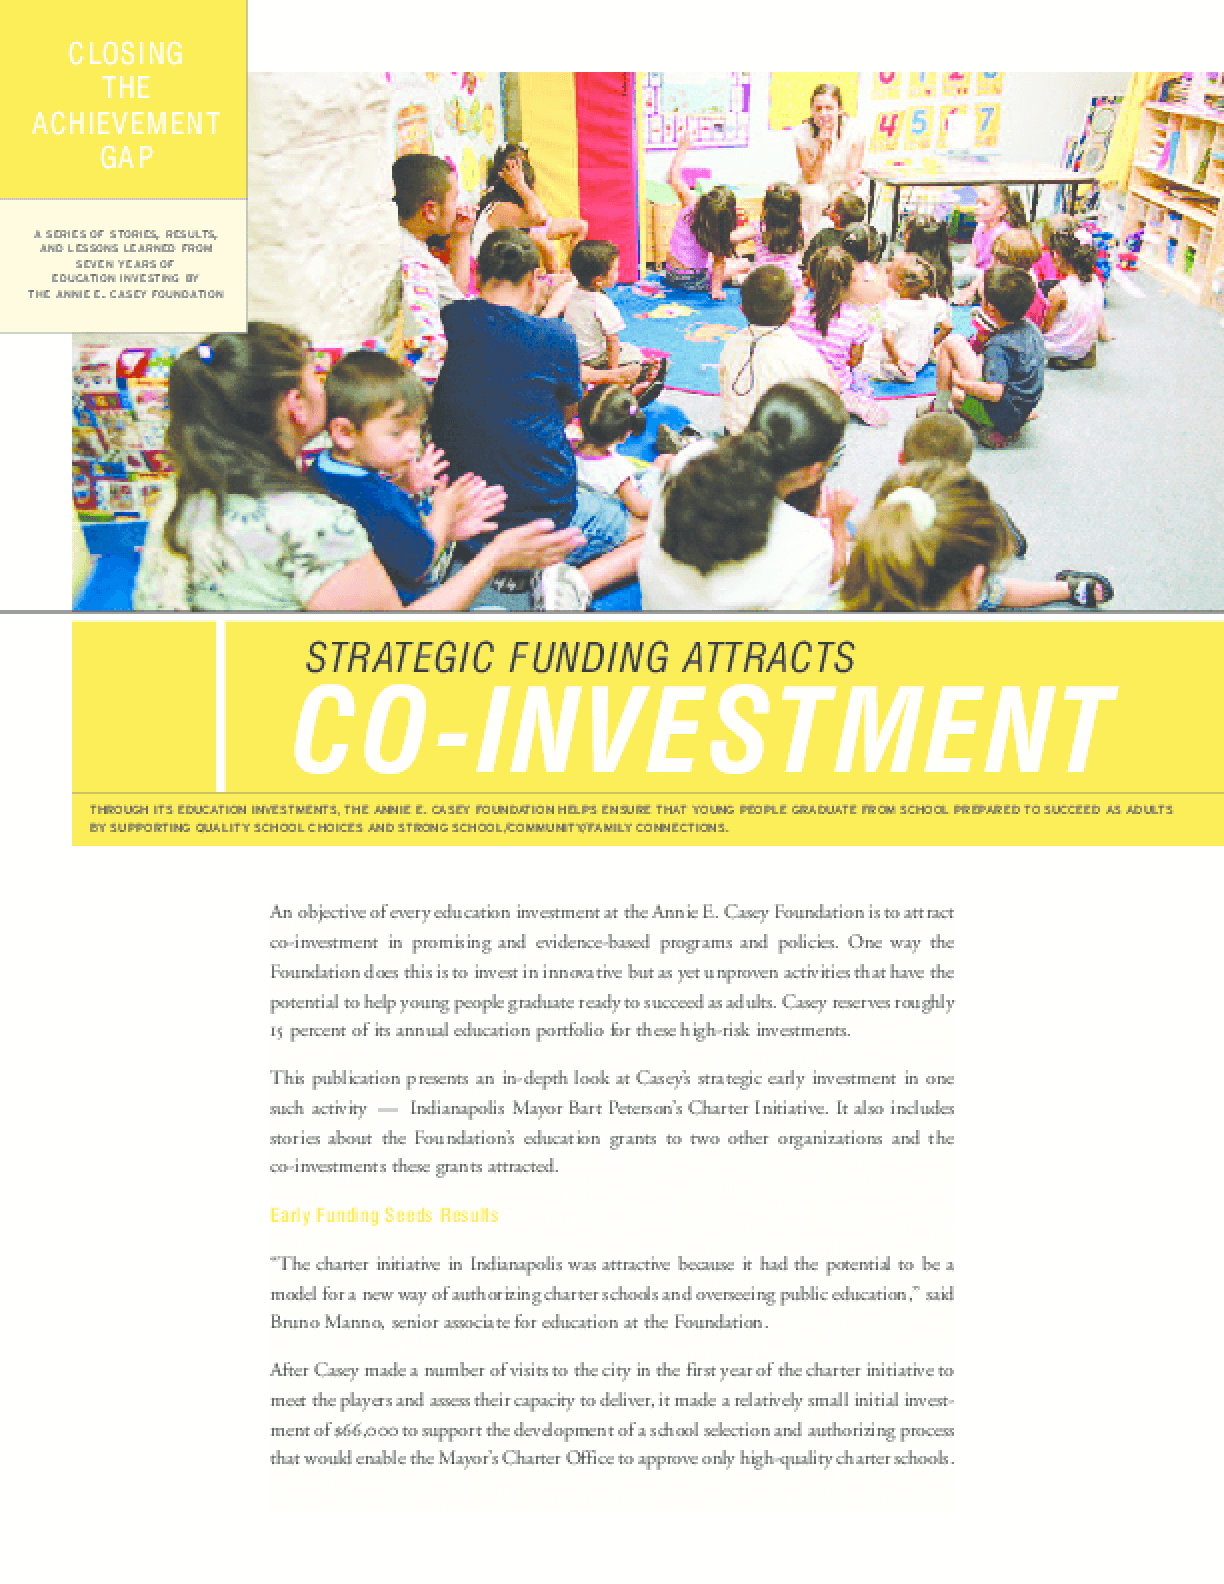 Closing the Achievement Gap: Strategic Funding Attracts Co-Investment